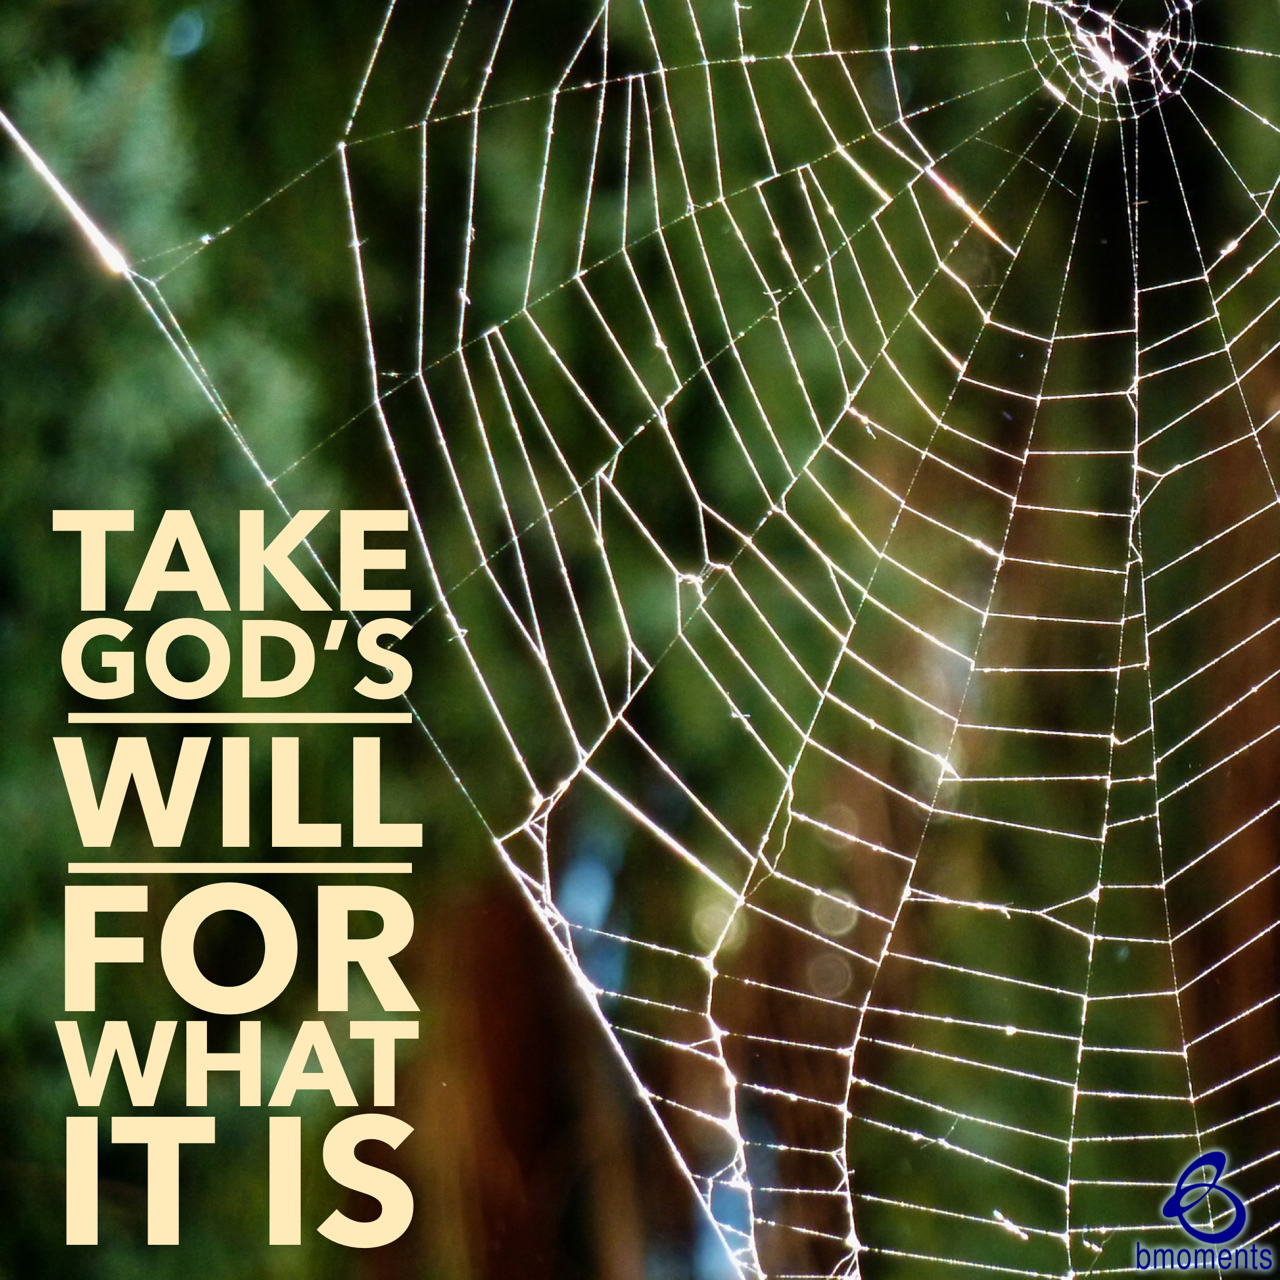 Avoid Putting Your Own Spin on God's Will